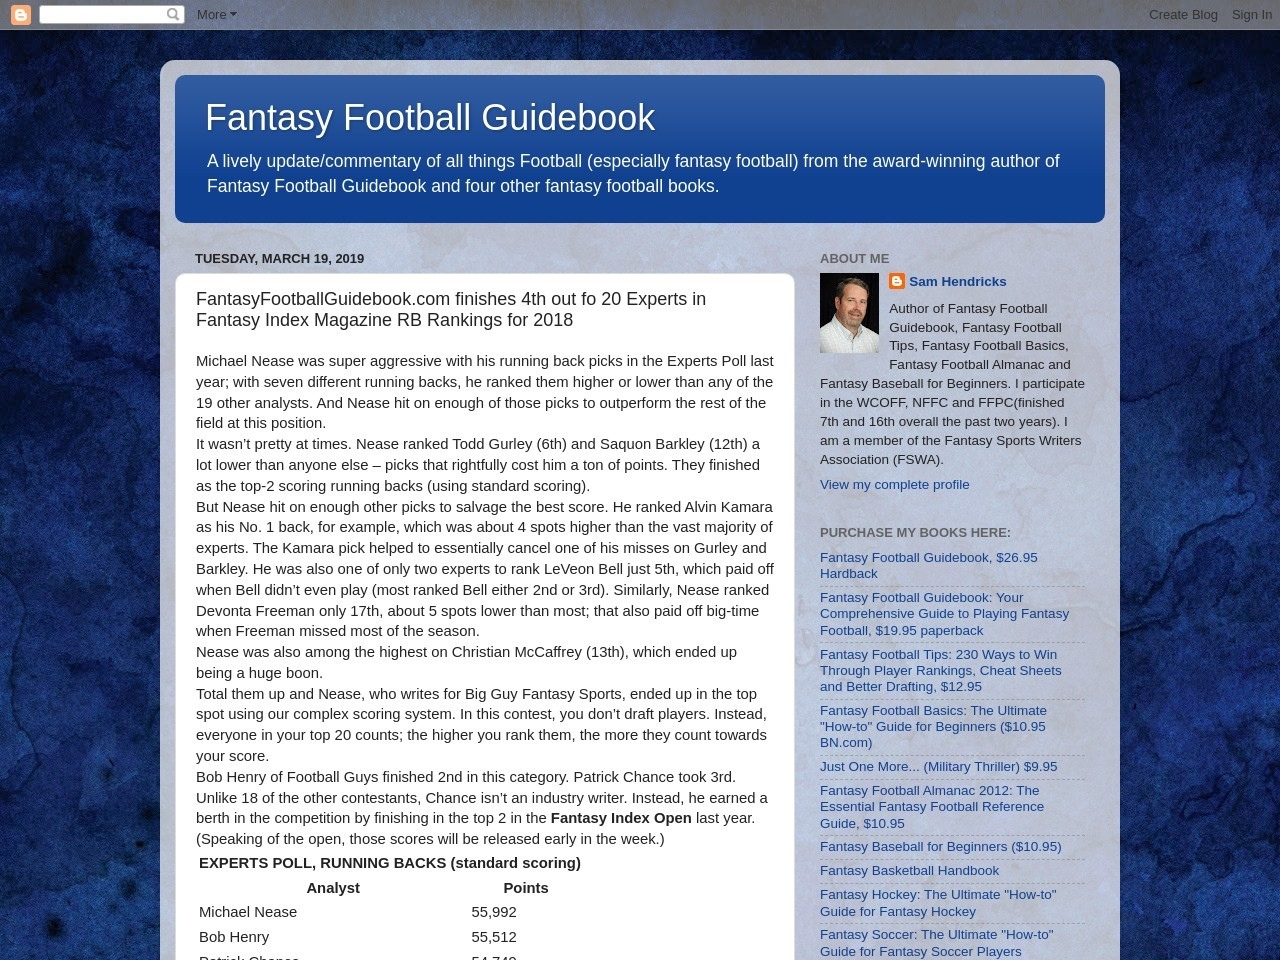 FantasyFootballGuidebook.com finishes 4th out fo 20 Experts in Fantasy Index Magazine RB Rankings for 2018